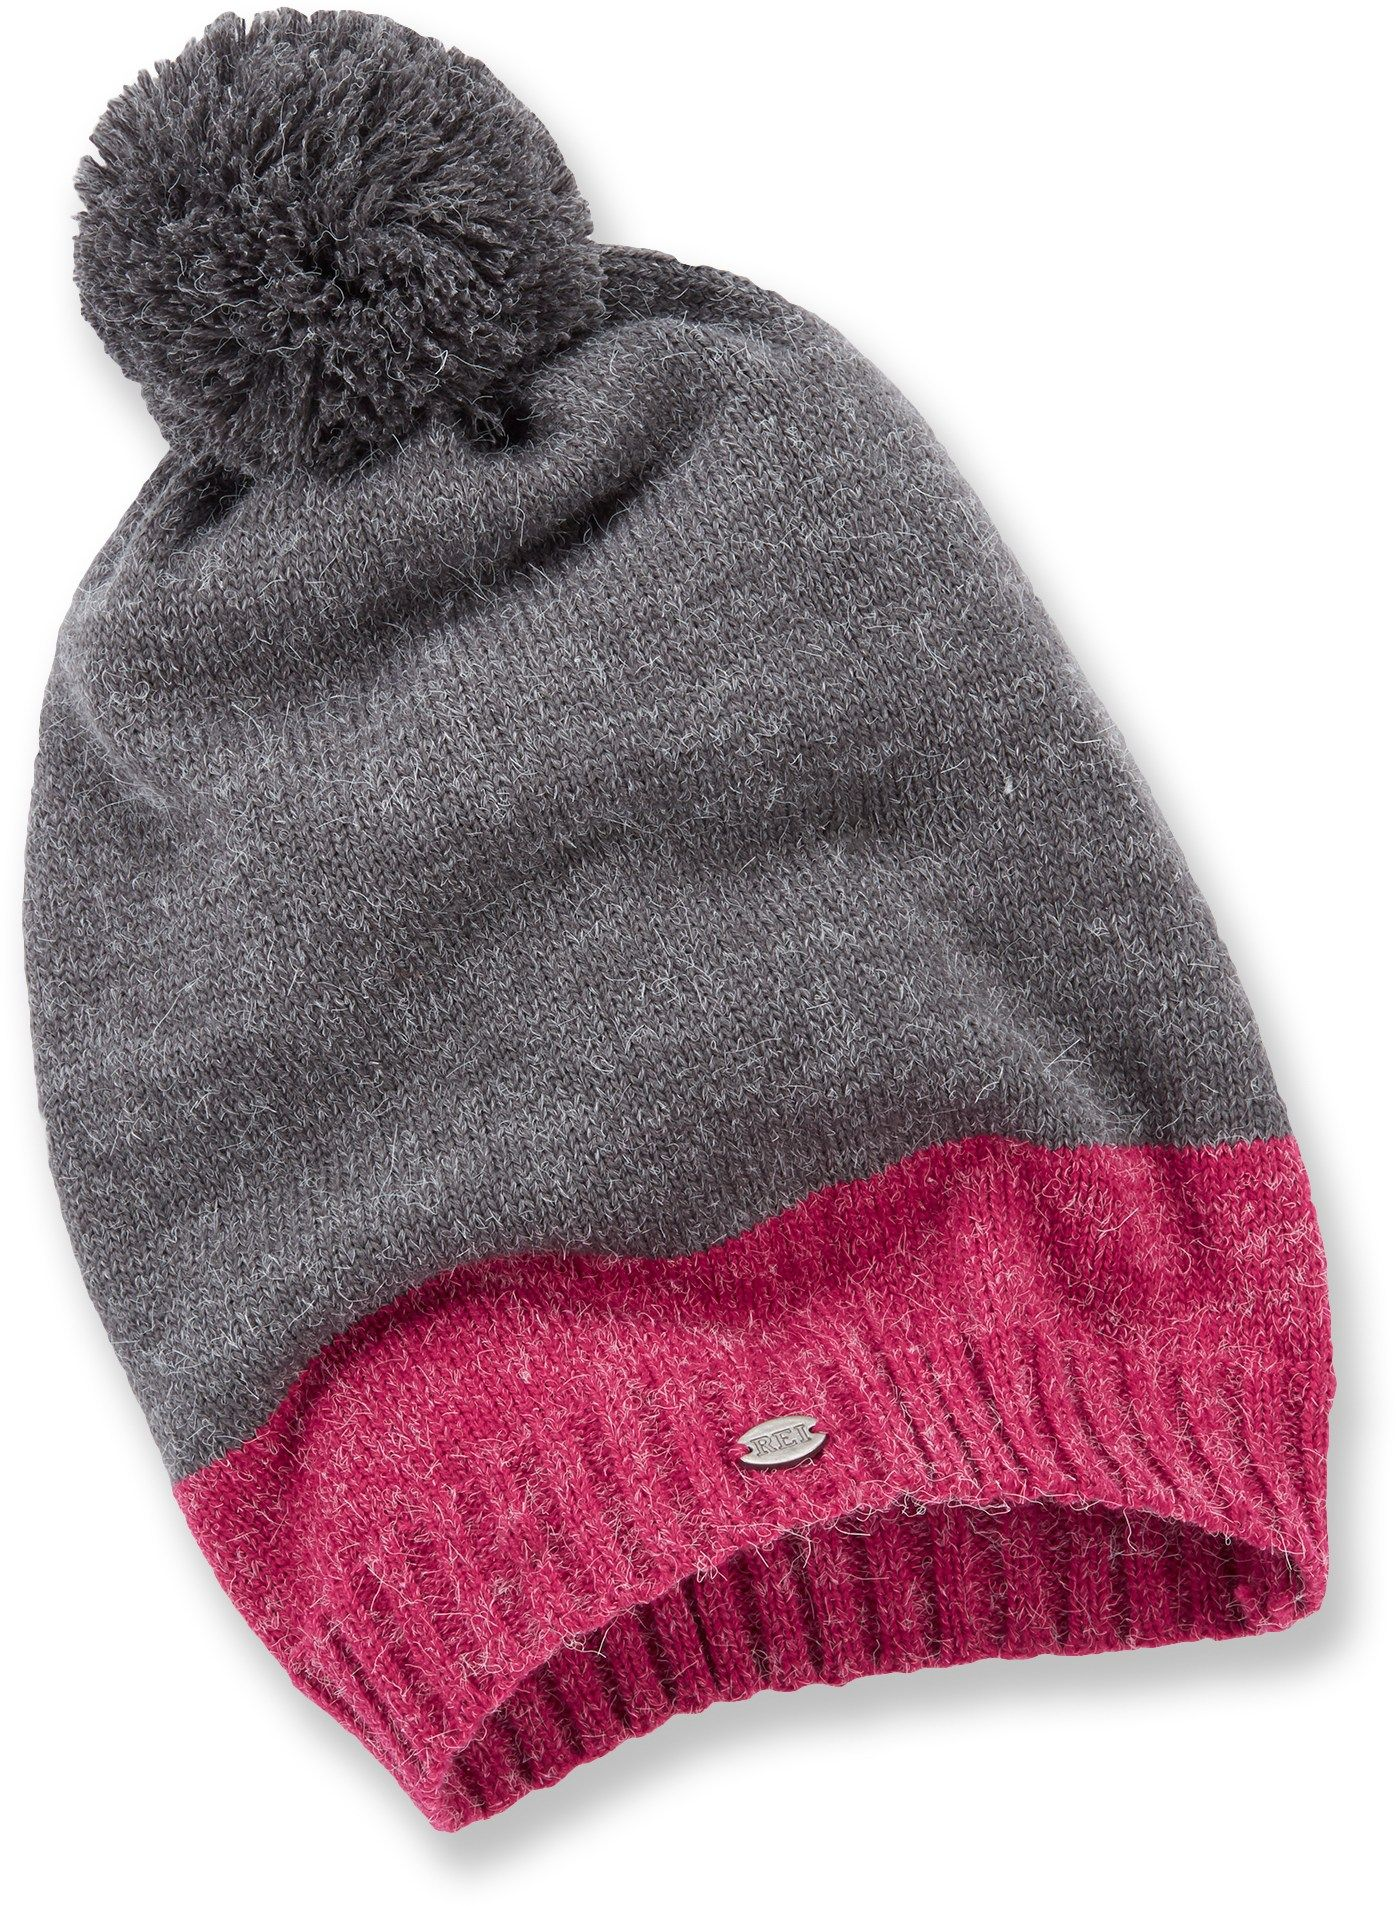 Rei Female Colorblock Beanie - Women s Winter Hats 5b6cf5c8b5e